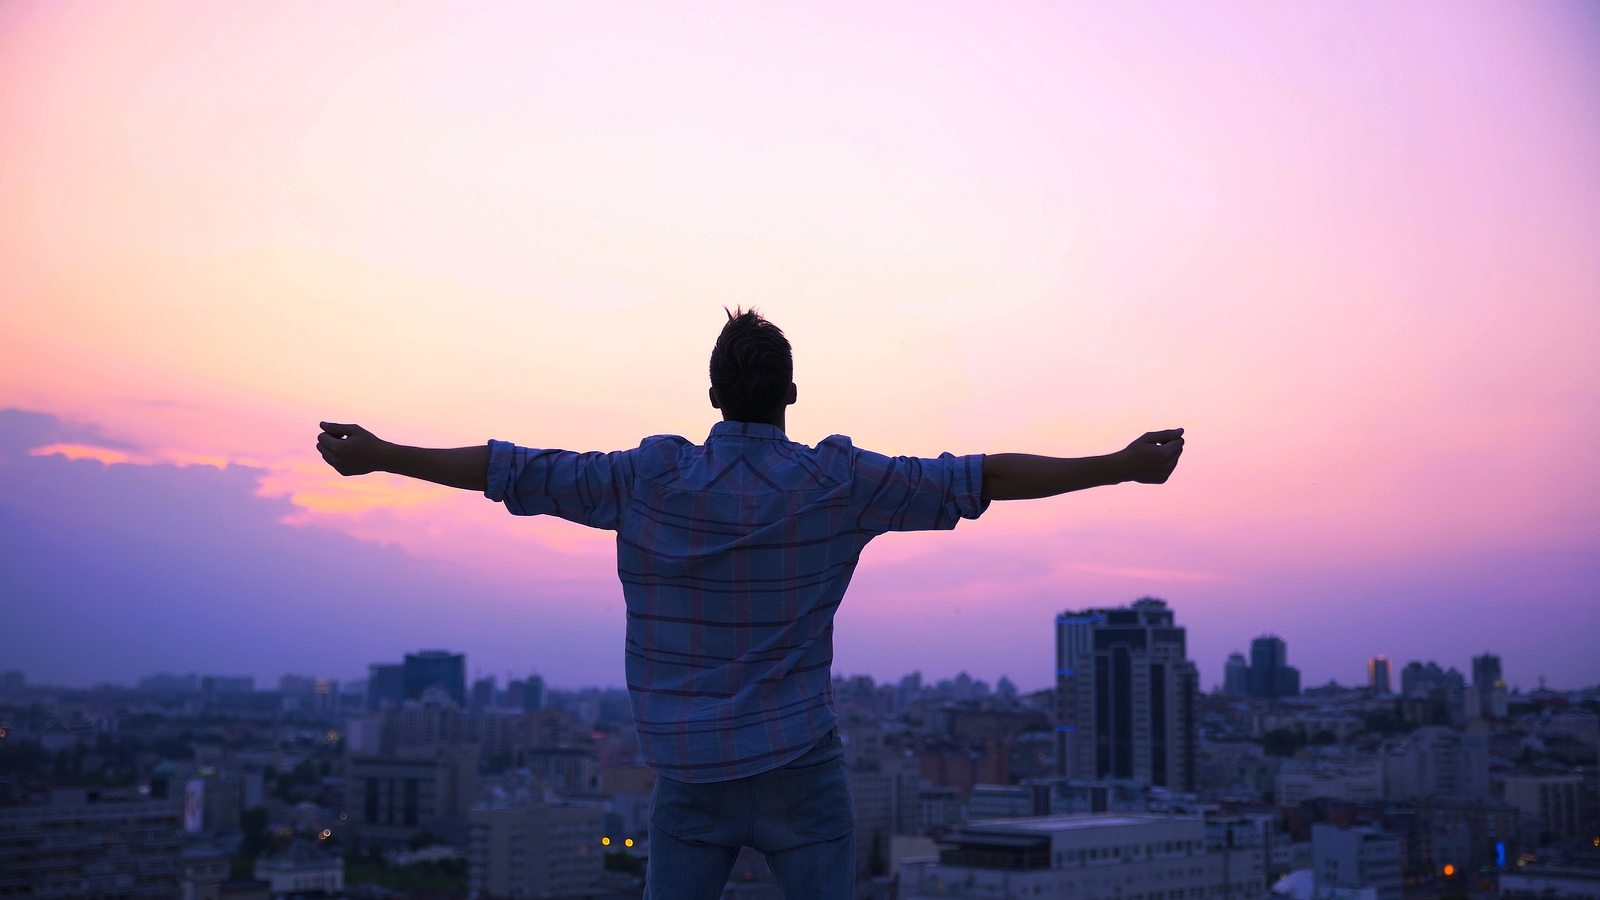 Man with arms outstretched stands on top of a building under the evening sky. He is happy that he has overcome his past trauma. Therapyology offers trauma therapy in West Bloomfield, MI, treatment for ptsd, and more. Contact us today to start trauma therapy in Michigan.